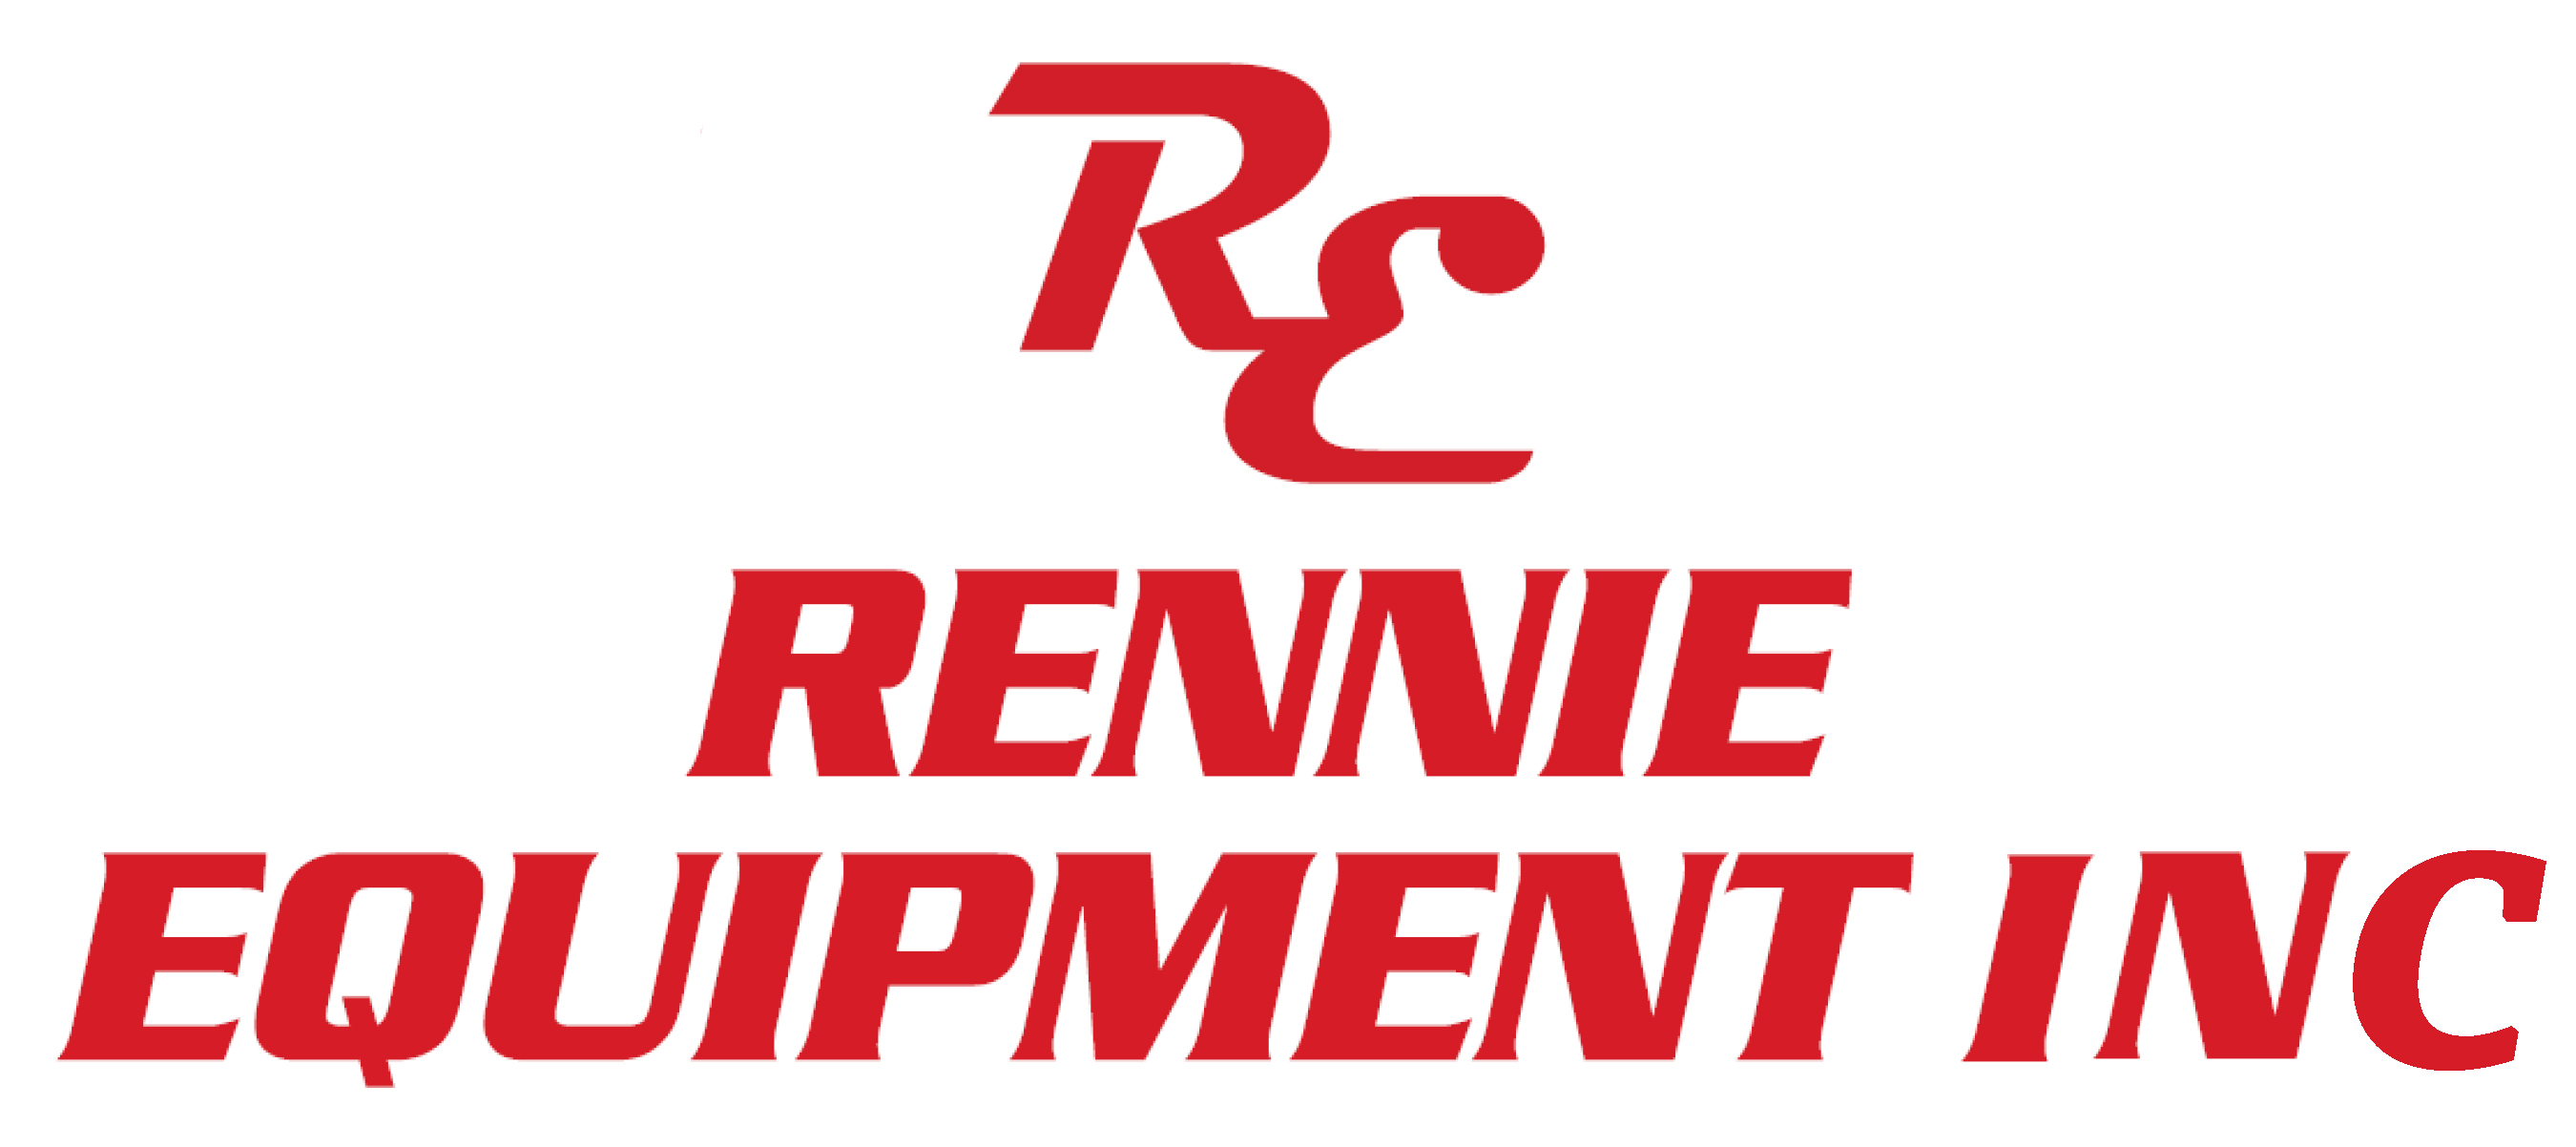 Rennie Equipment Inc.